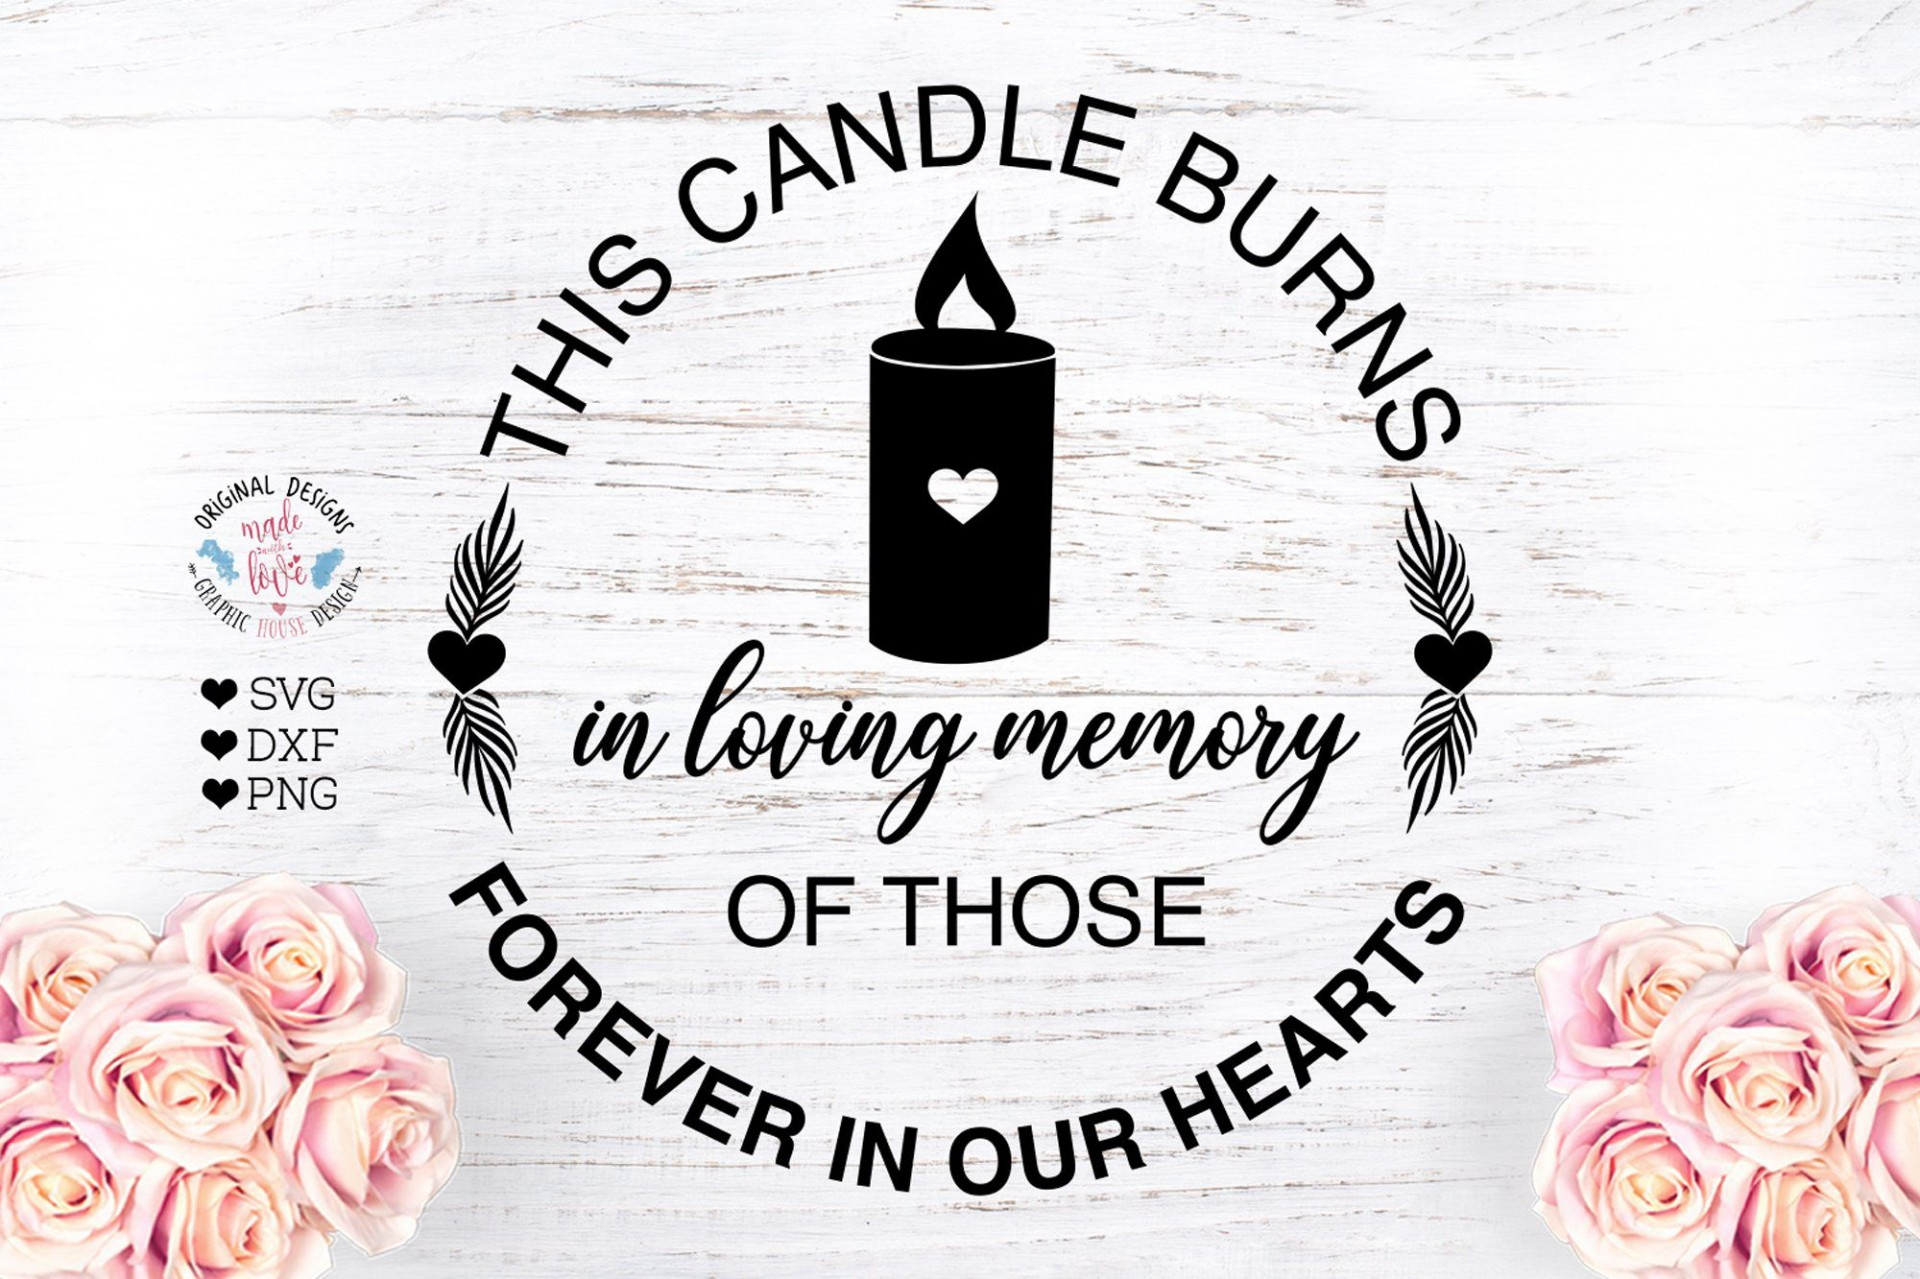 008 Impressive In Loving Memory Decal Template Inspiration  Templates1920